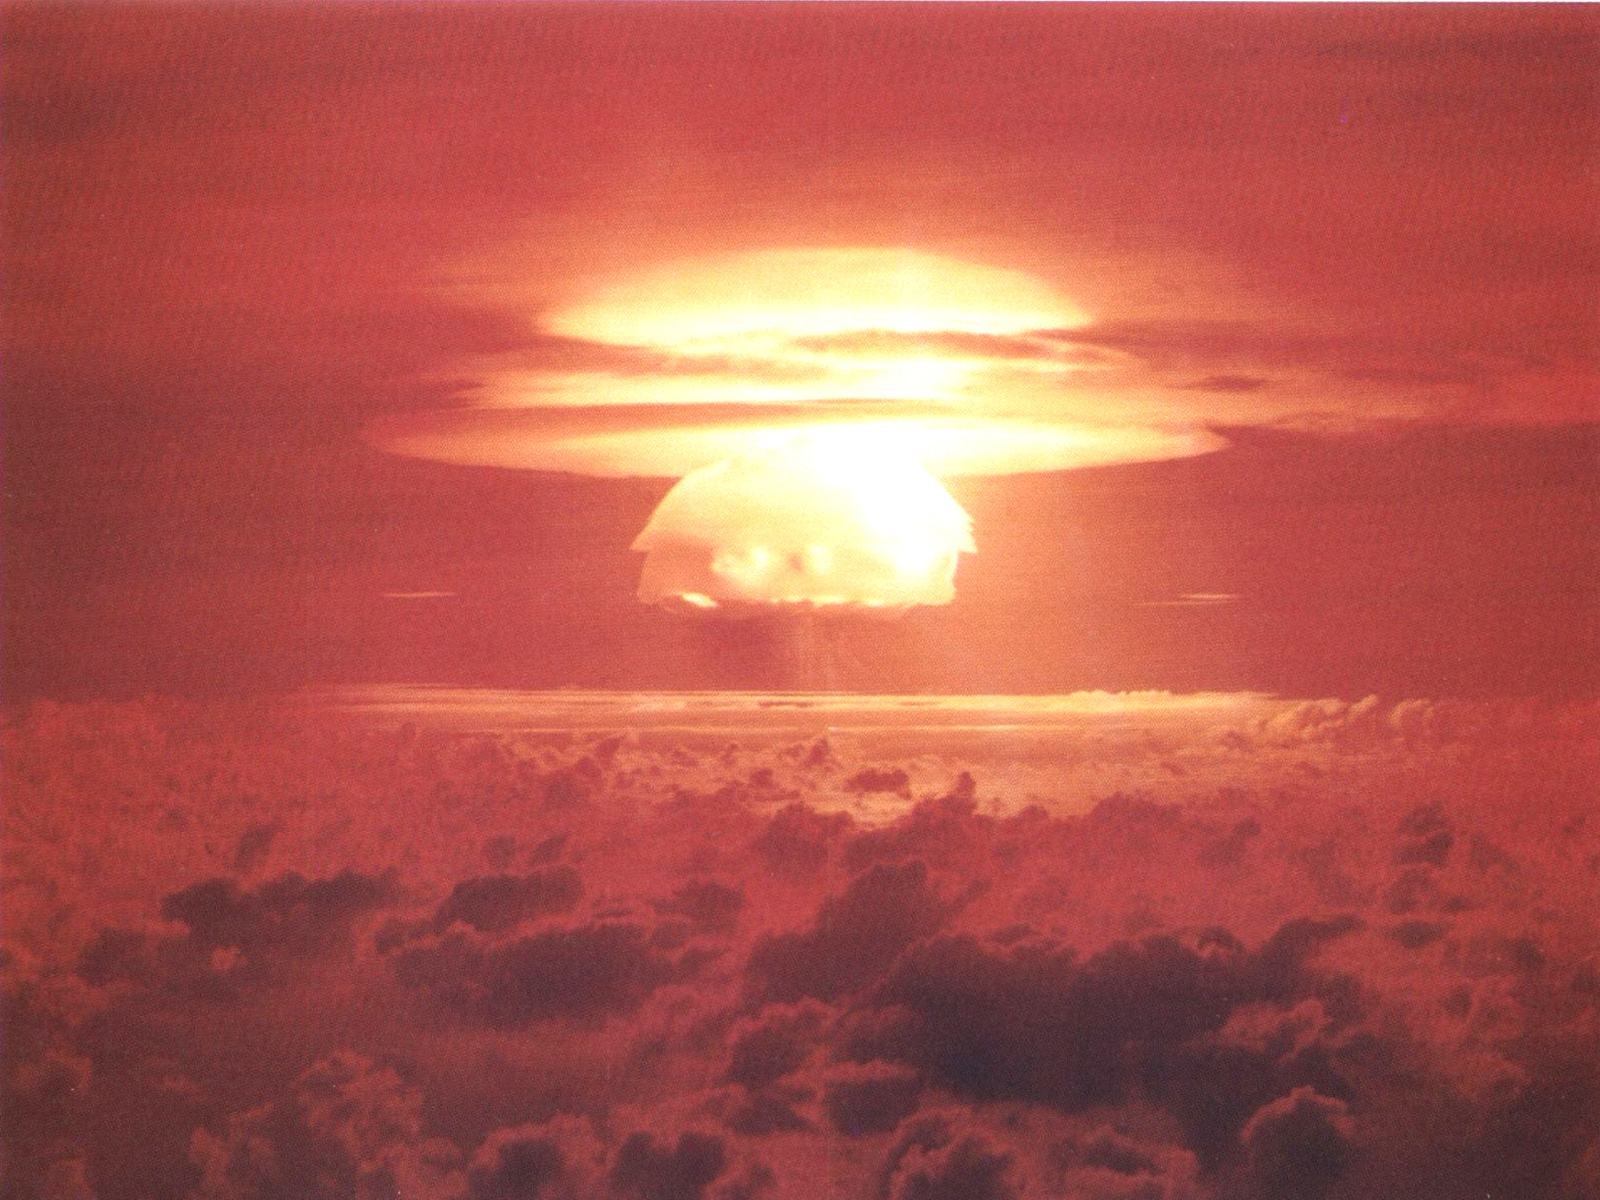 Can the World Come to Its Senses on Nuclear Weapons?